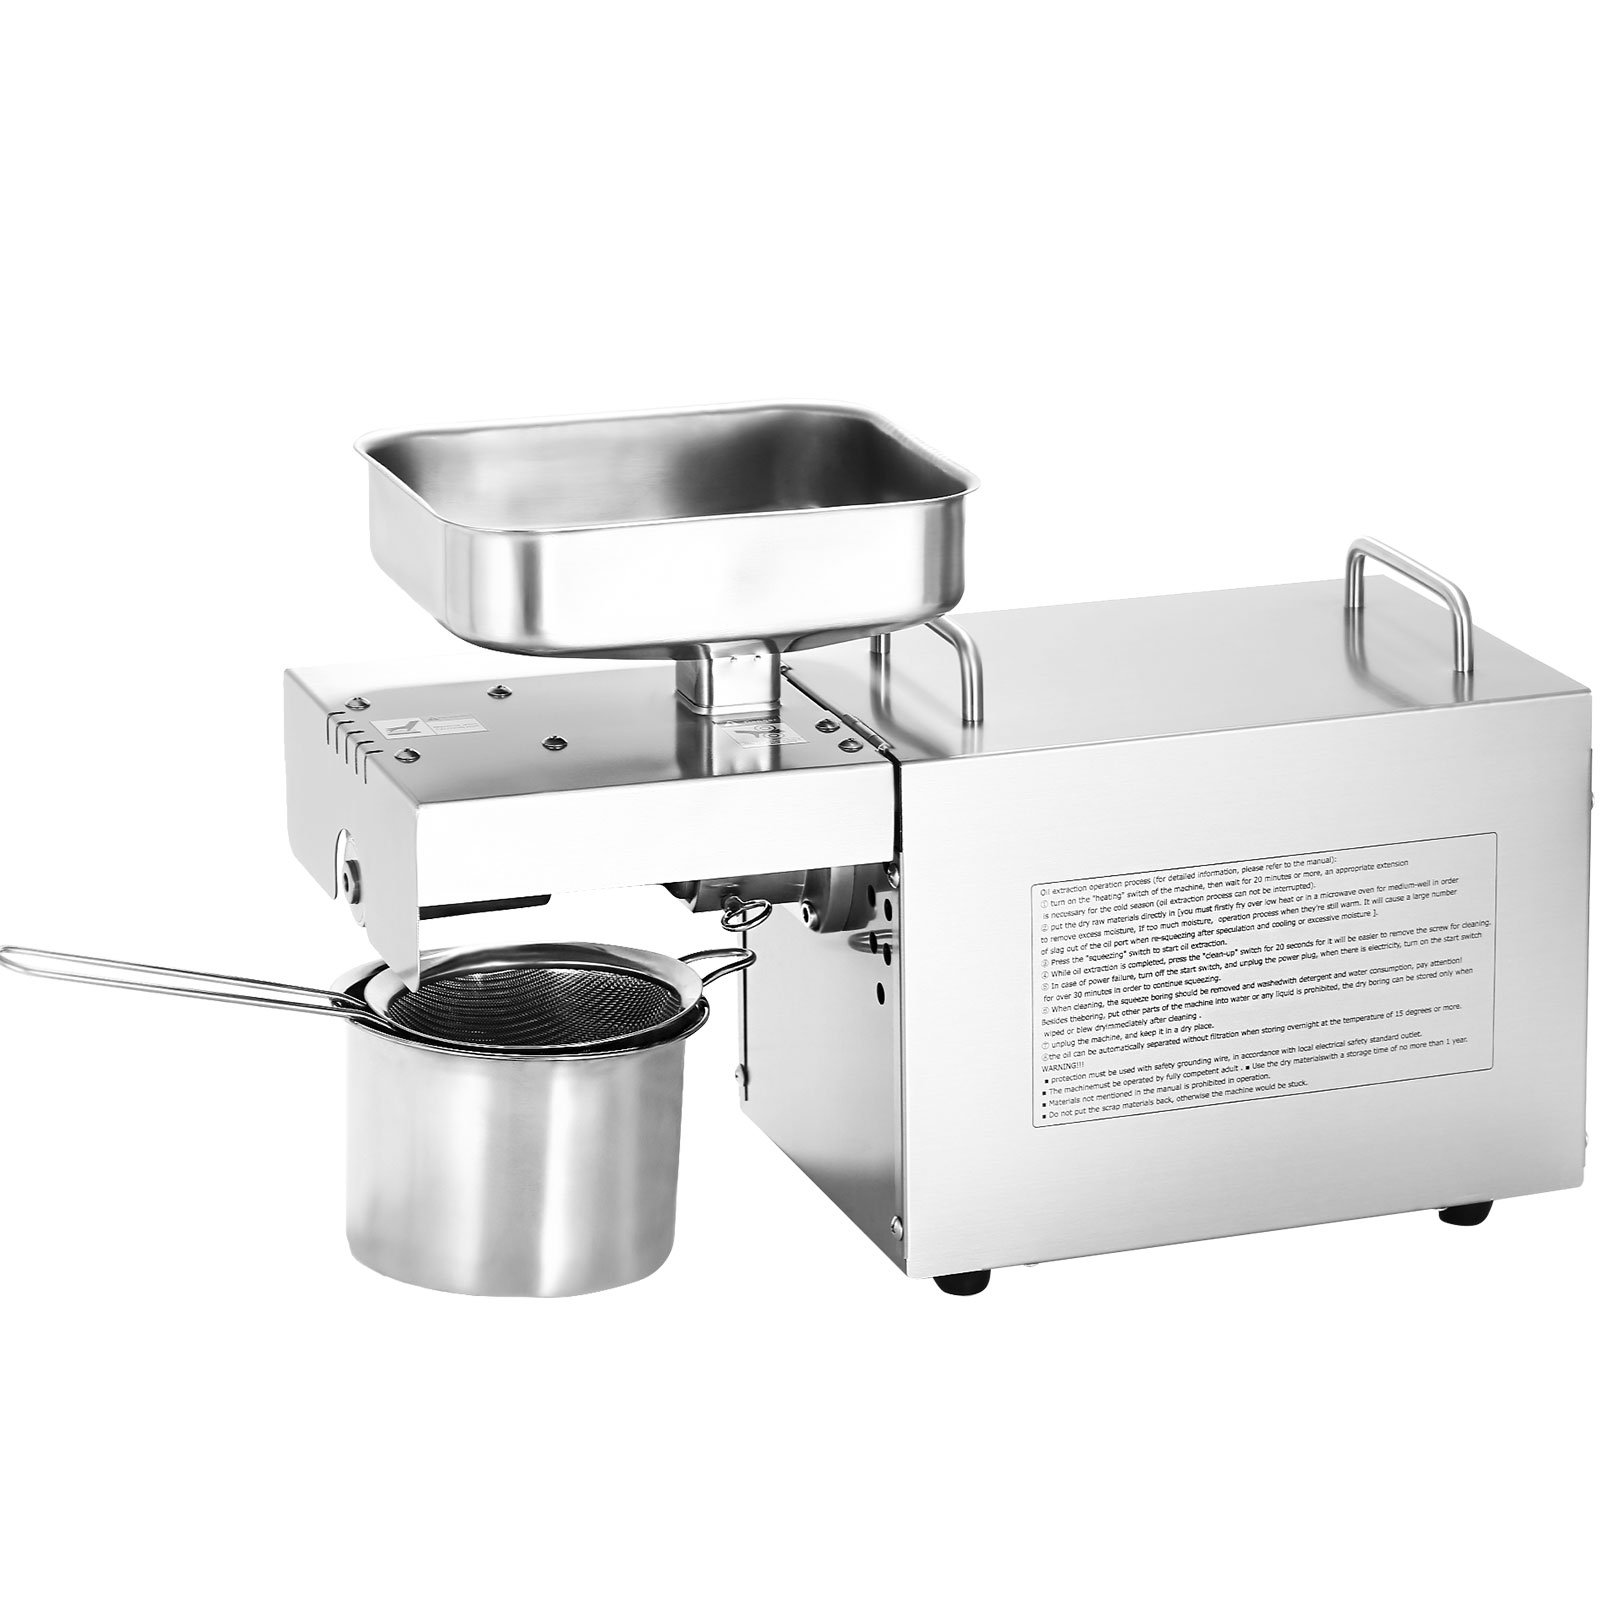 LOVSHARE Automatic Oil Press Machine Stainless Steel 95% Oil Yield Oil Expeller Machine 3 Settings Commercial Oil Press Machine Extractor for Home